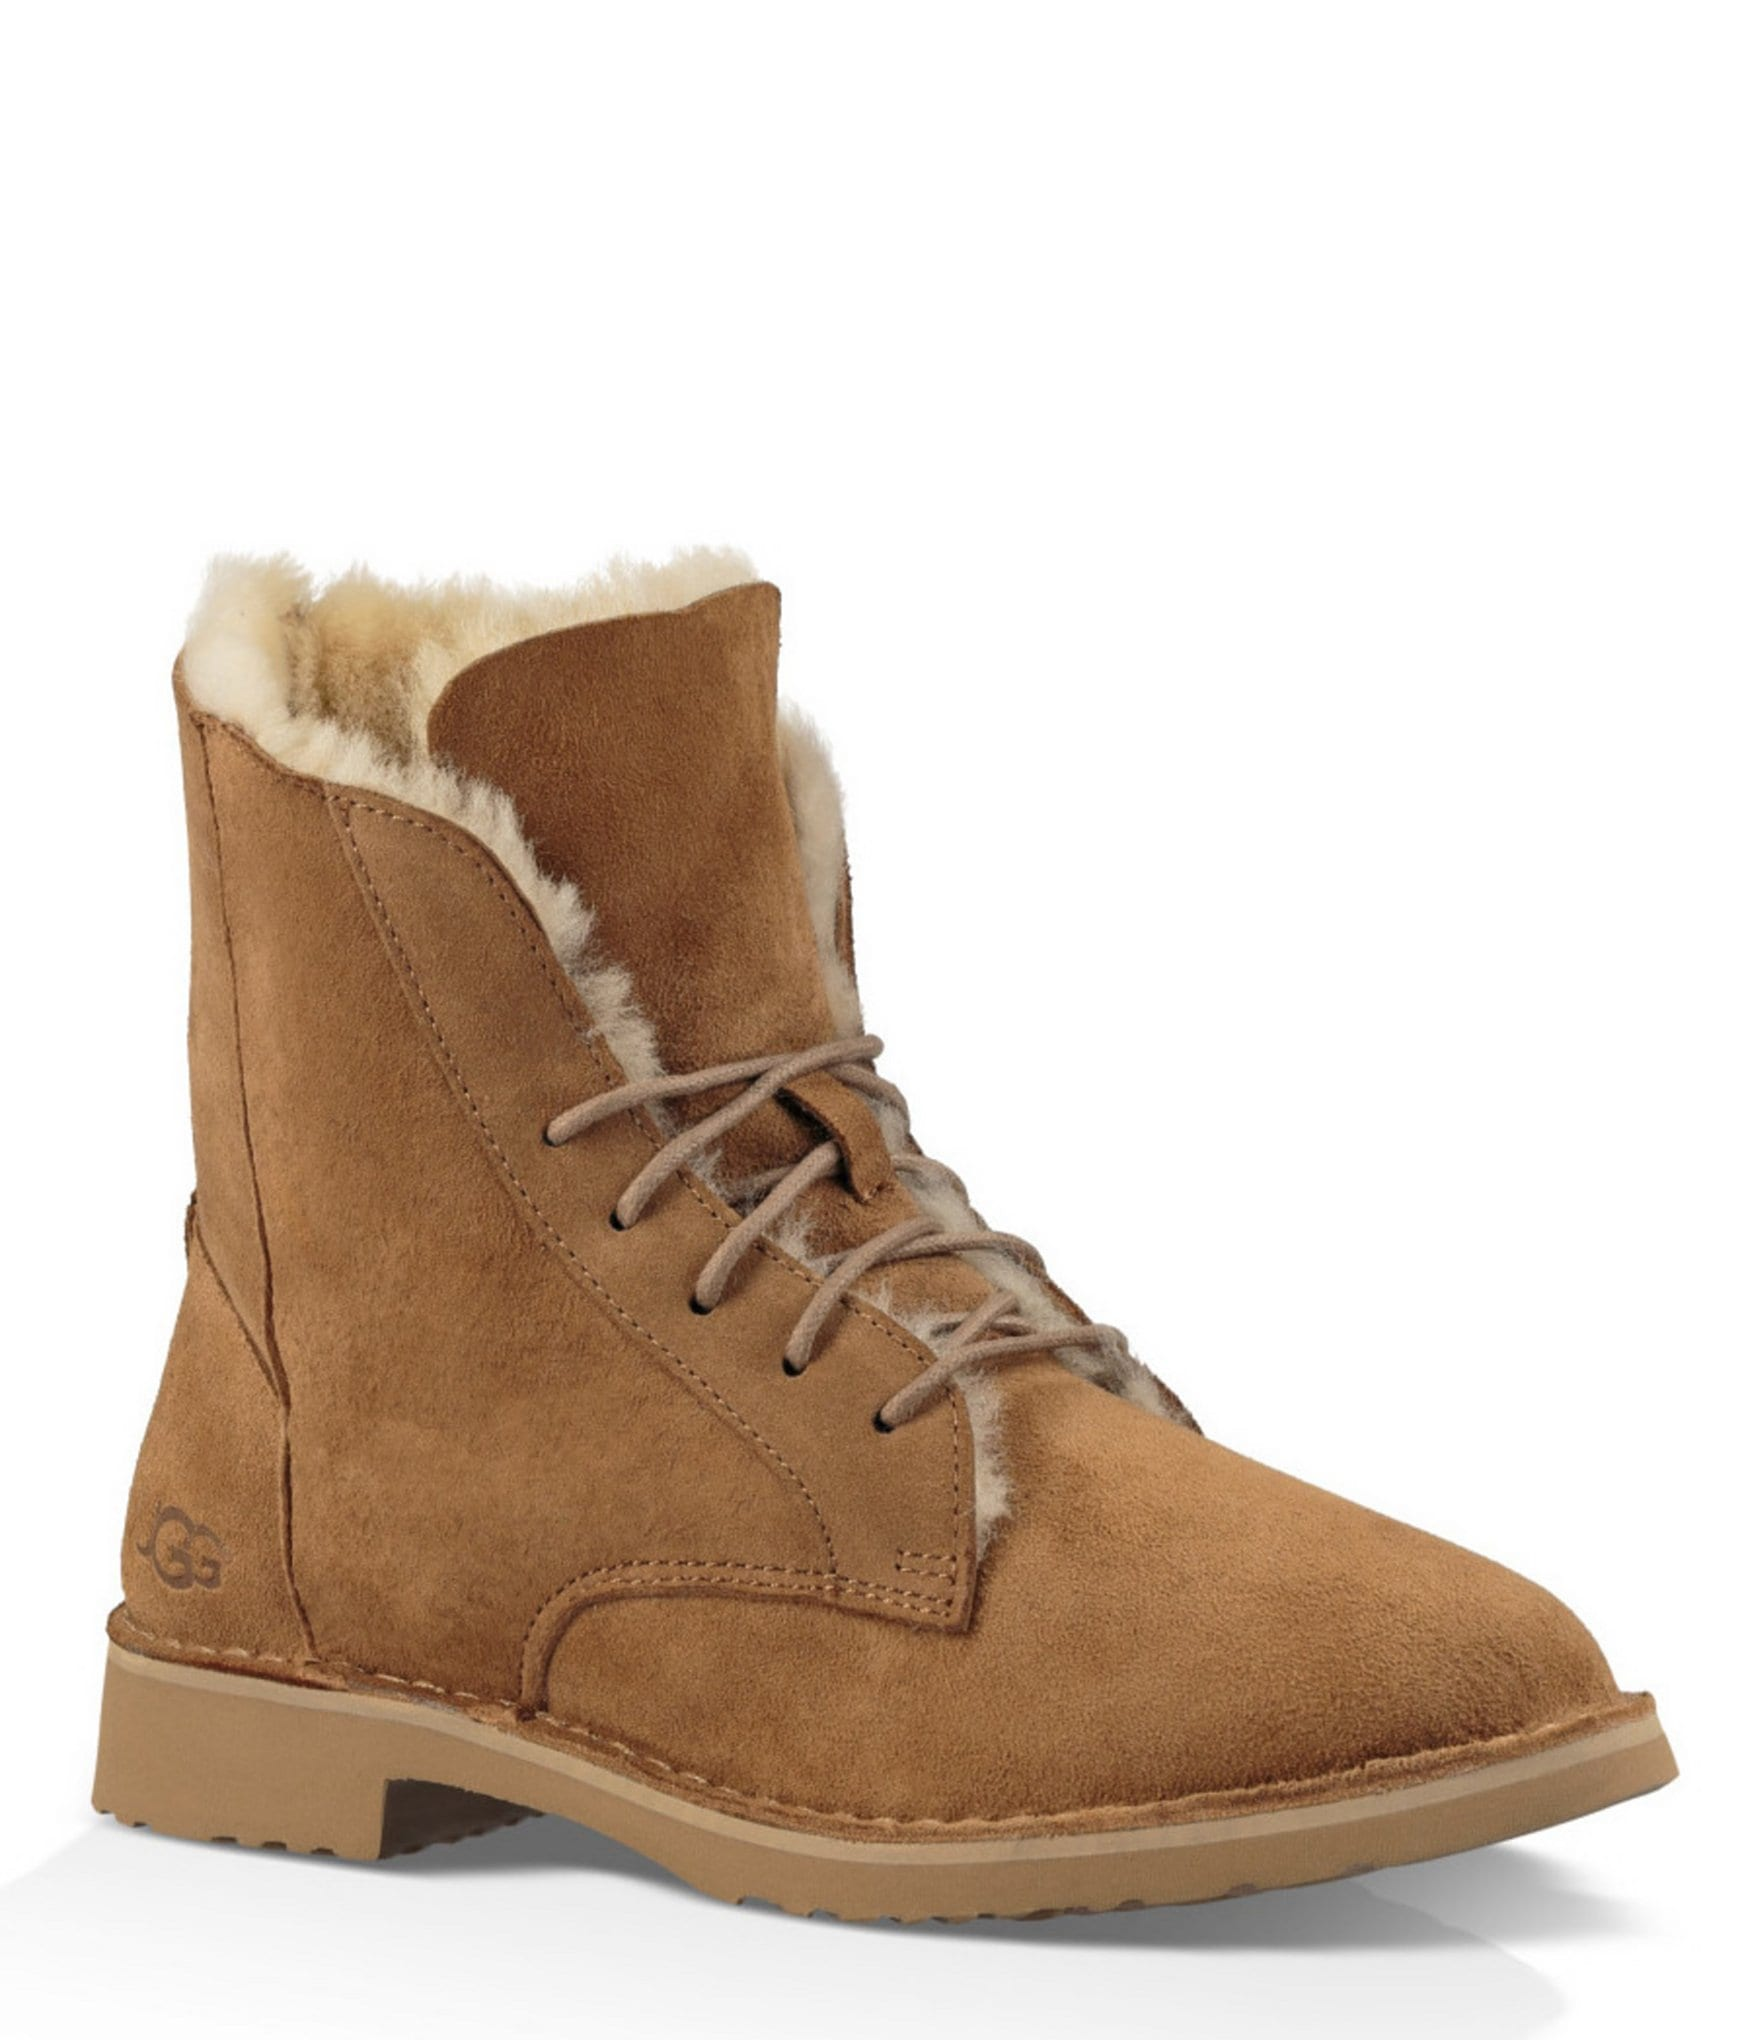 5de1baebd5e UGG® Quincy Lace Up Art-Deco Inspired Snap Booties